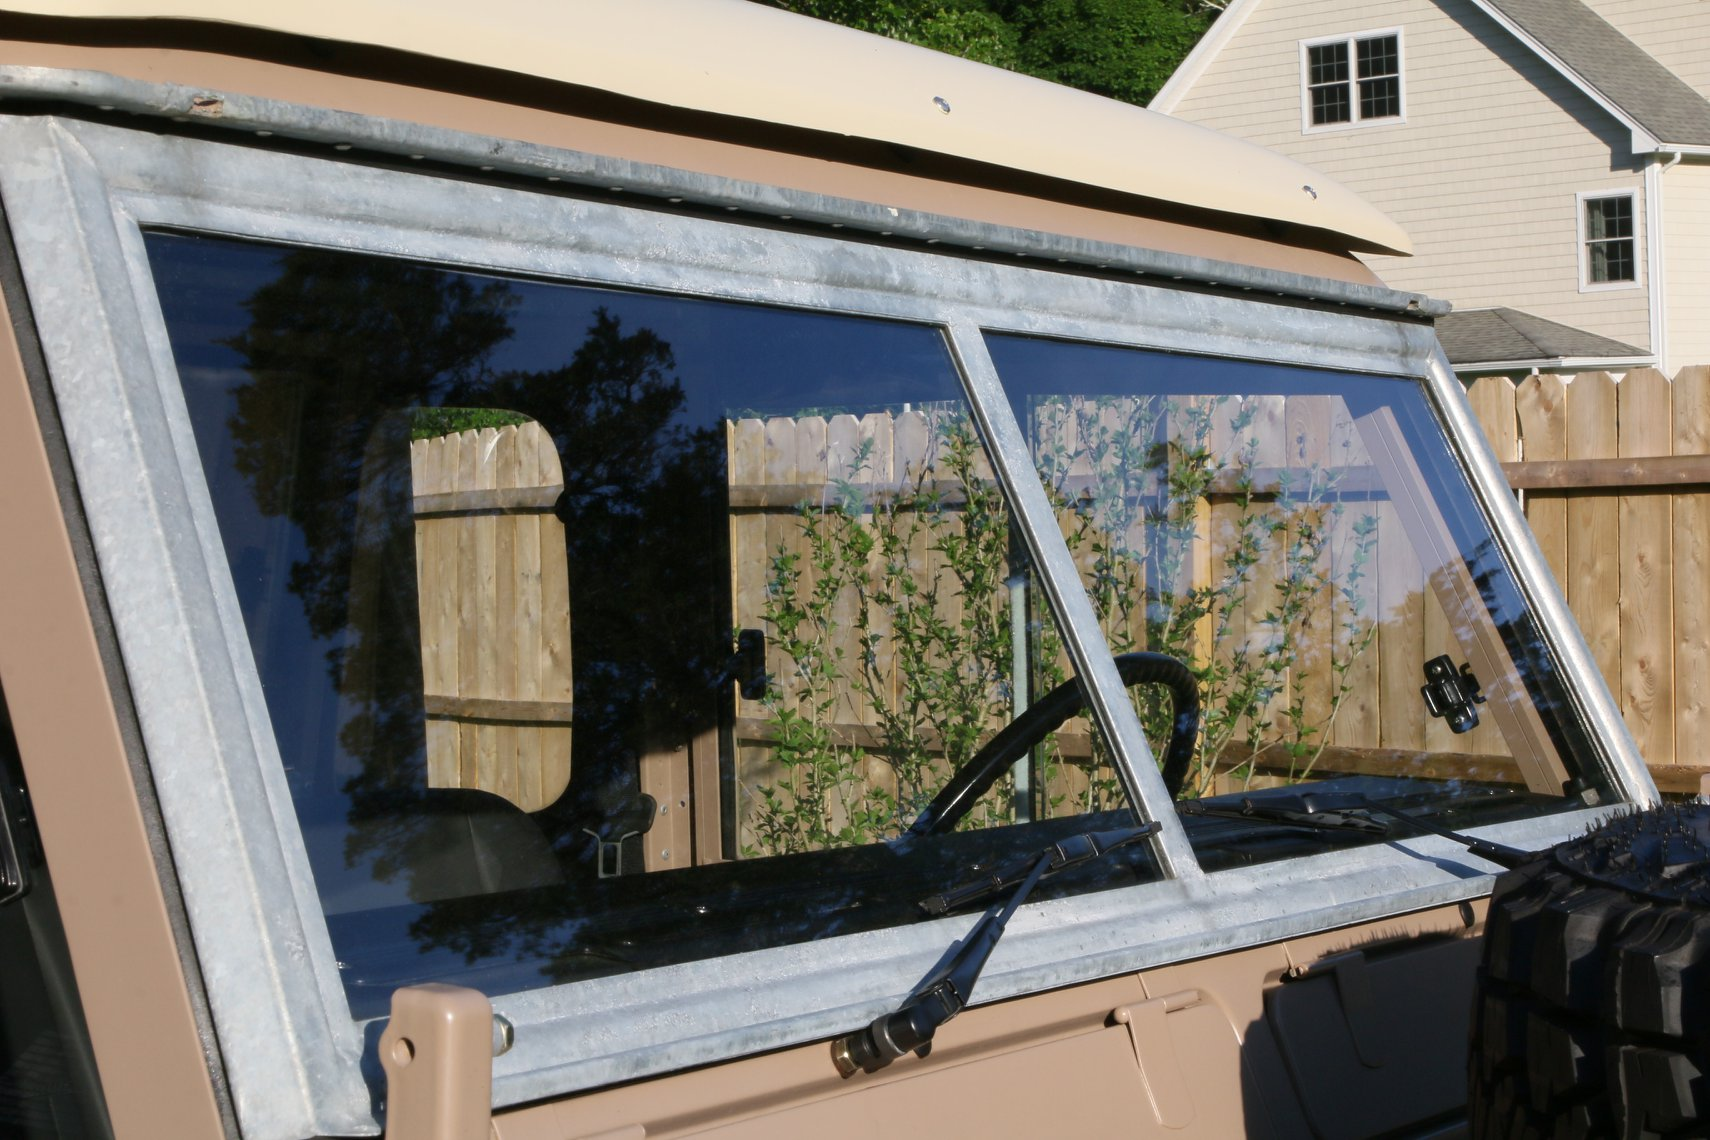 1972 Land Rover Series II 109 Inch Pickup Restoration Photo g